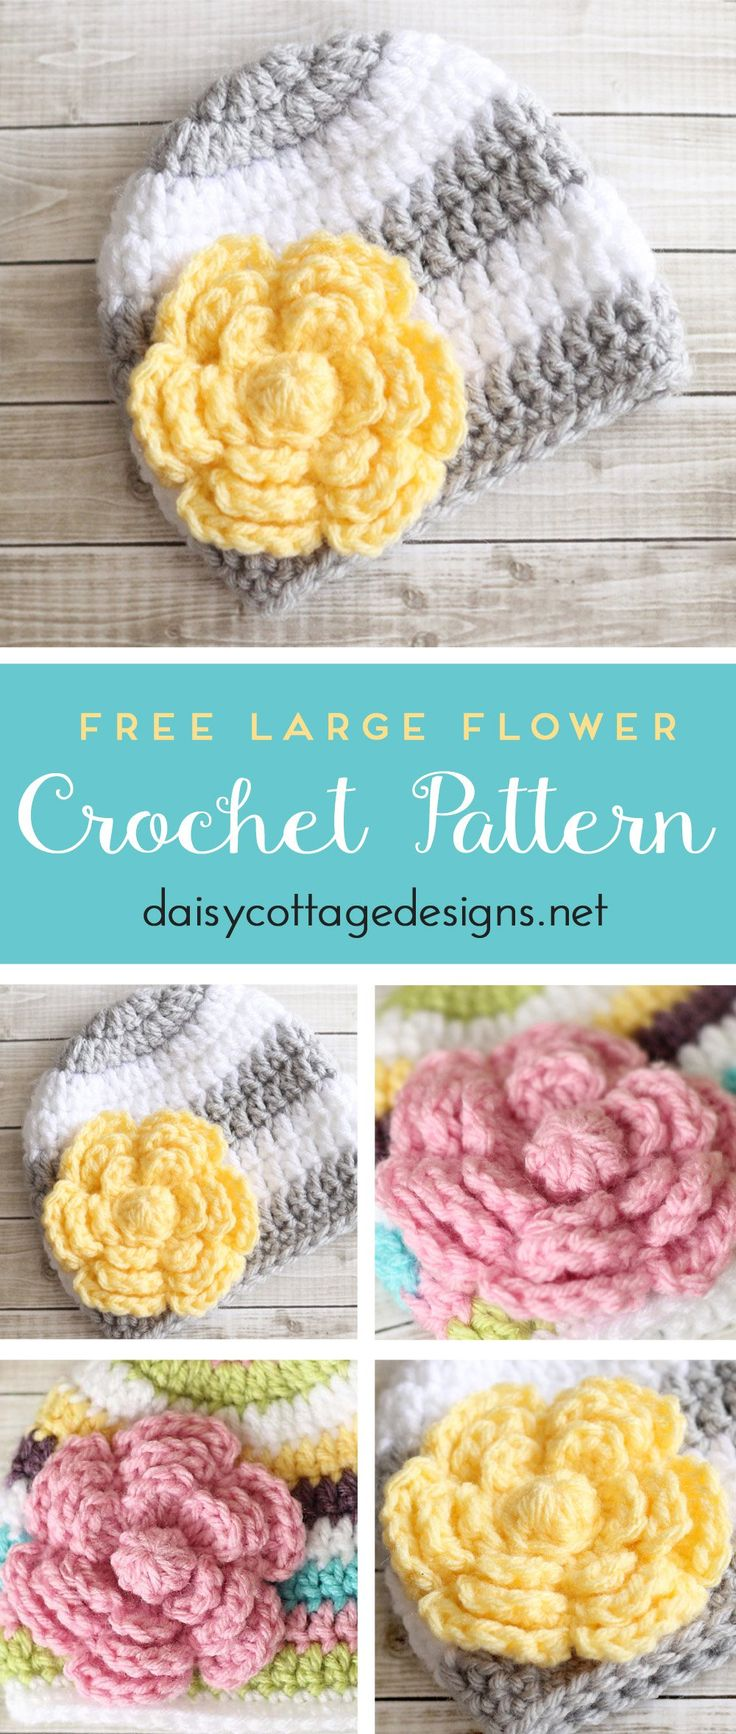 Free Large Flower Crochet Pattern